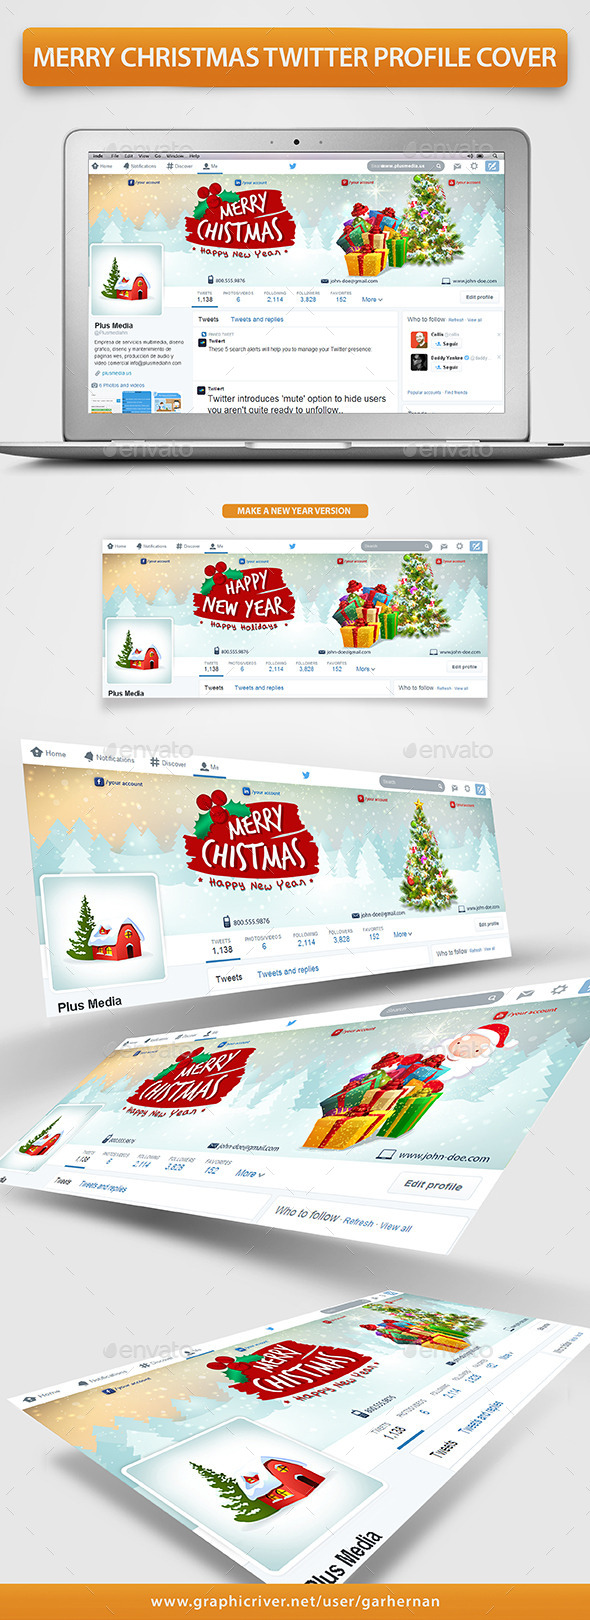 GraphicRiver Merry Christmas Twitter Profile Cover 9701184